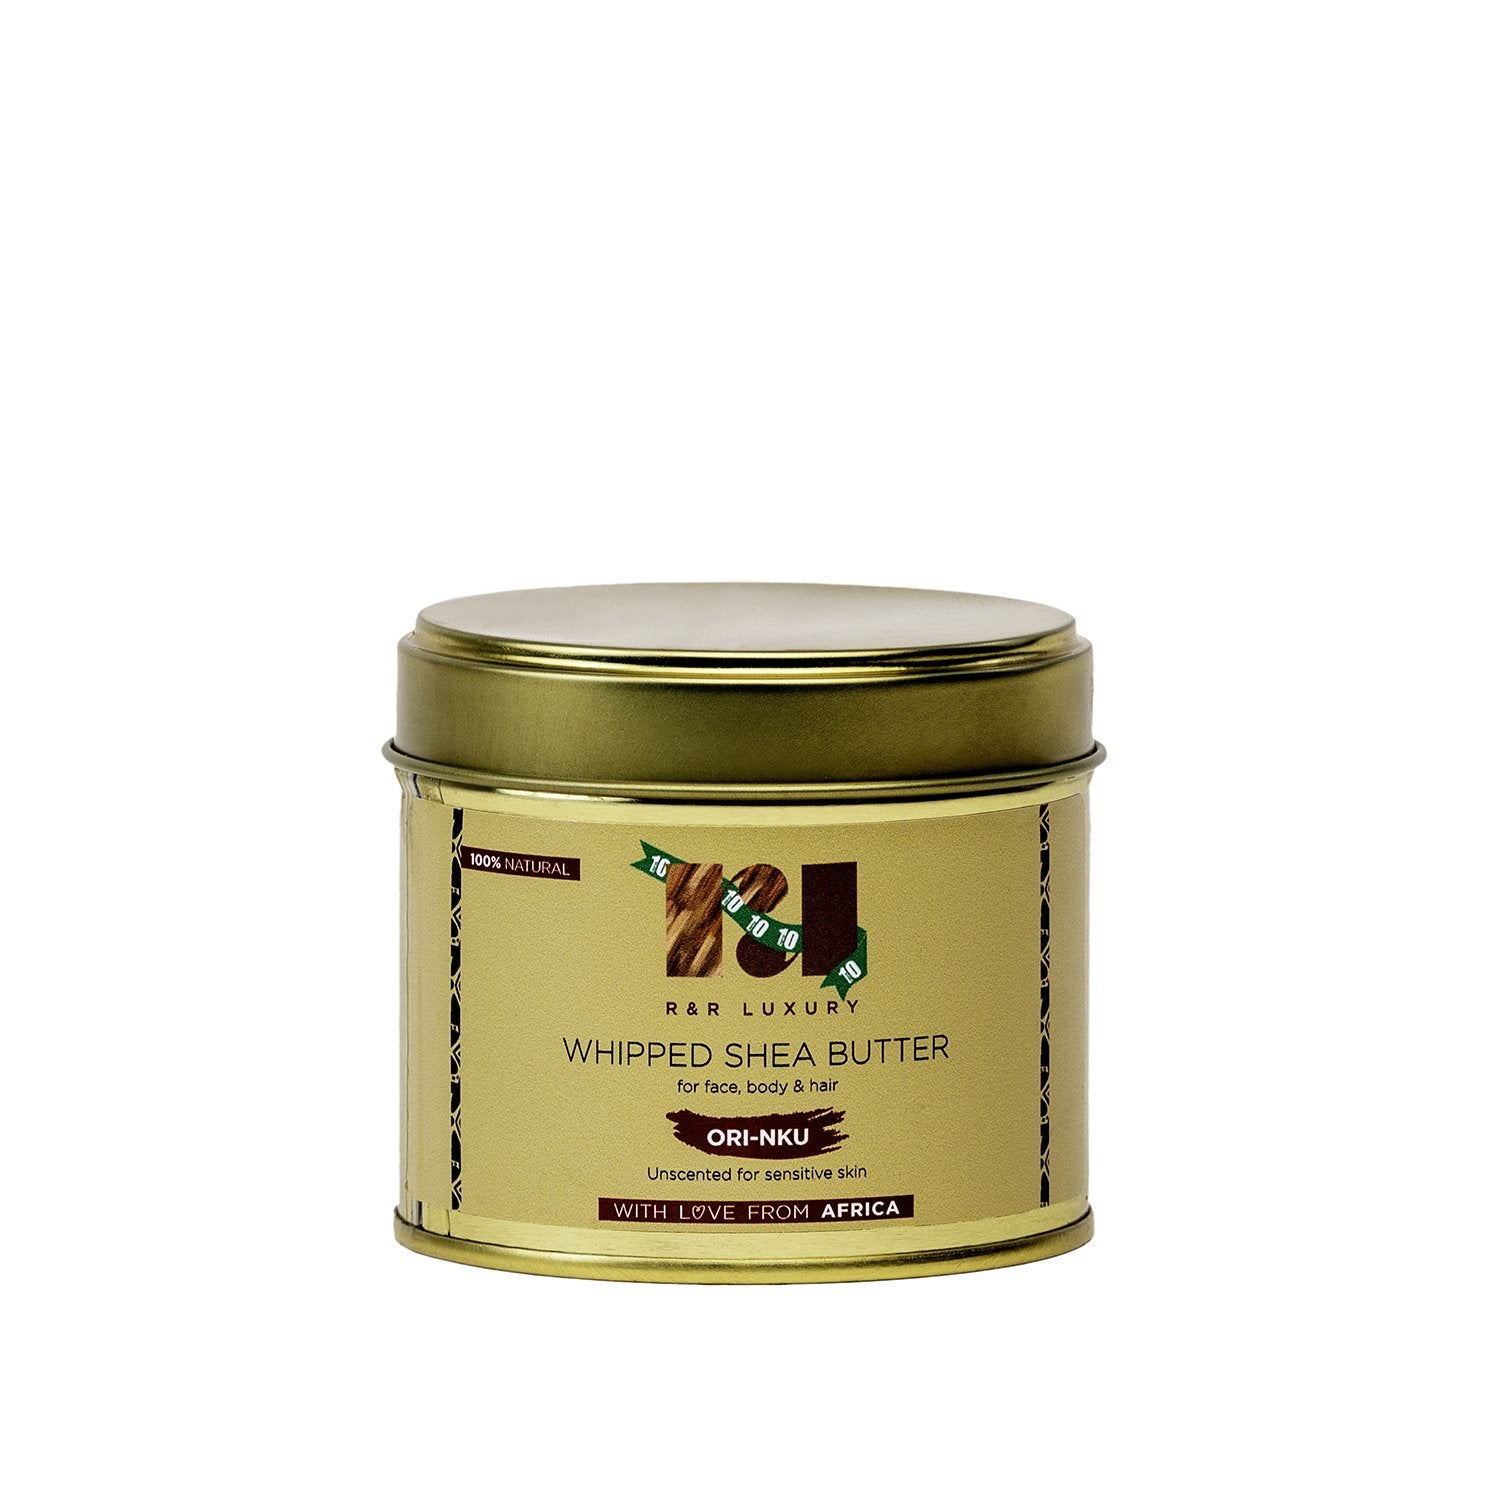 Eco-Friendly Whipped Shea Butter - Ori-Nku